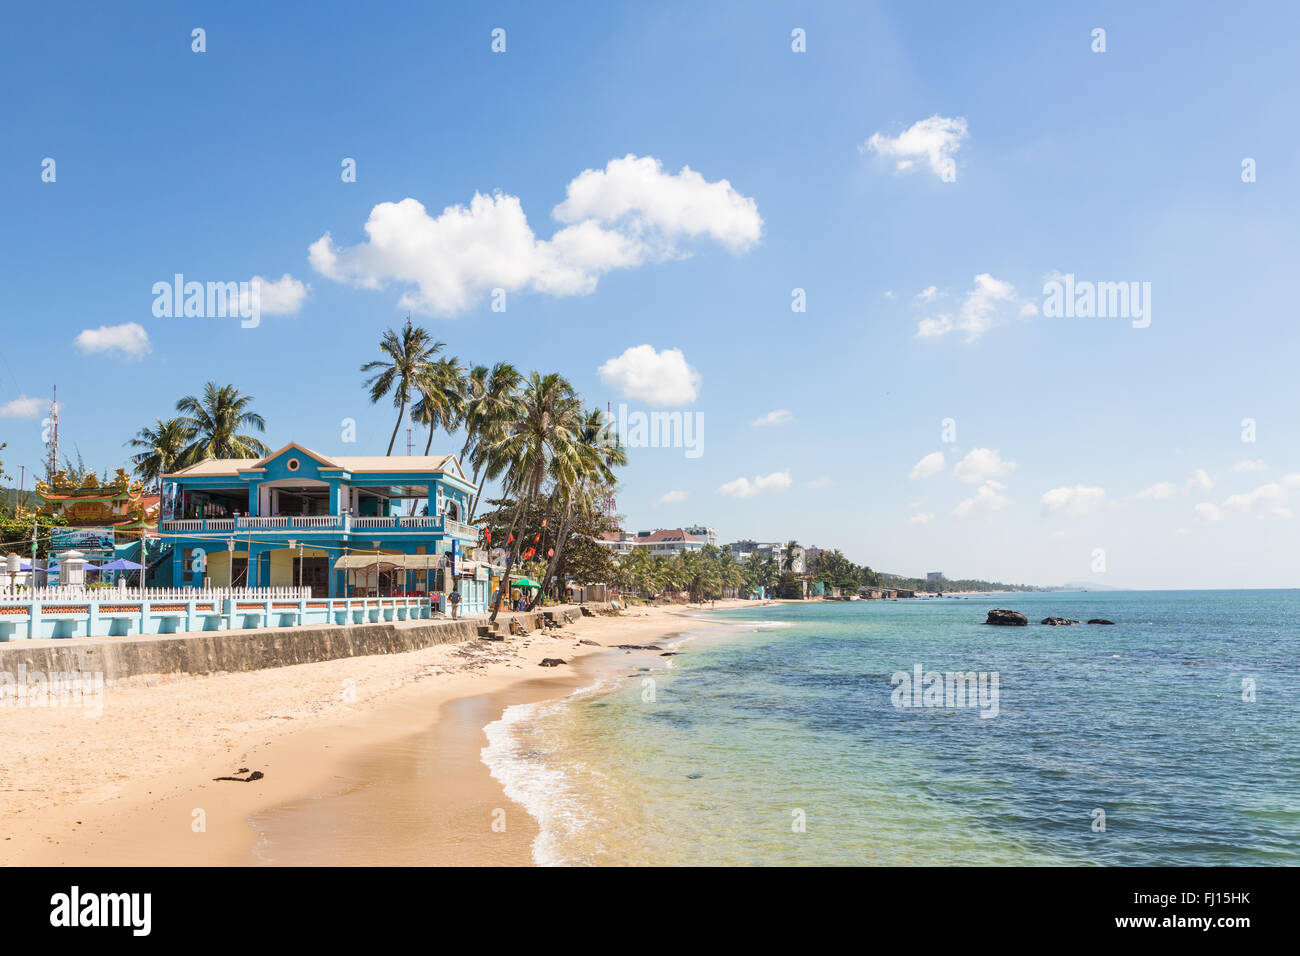 The beach in Duong Dong town in the popular Phu Quoc island in south Vietnam - Stock Image